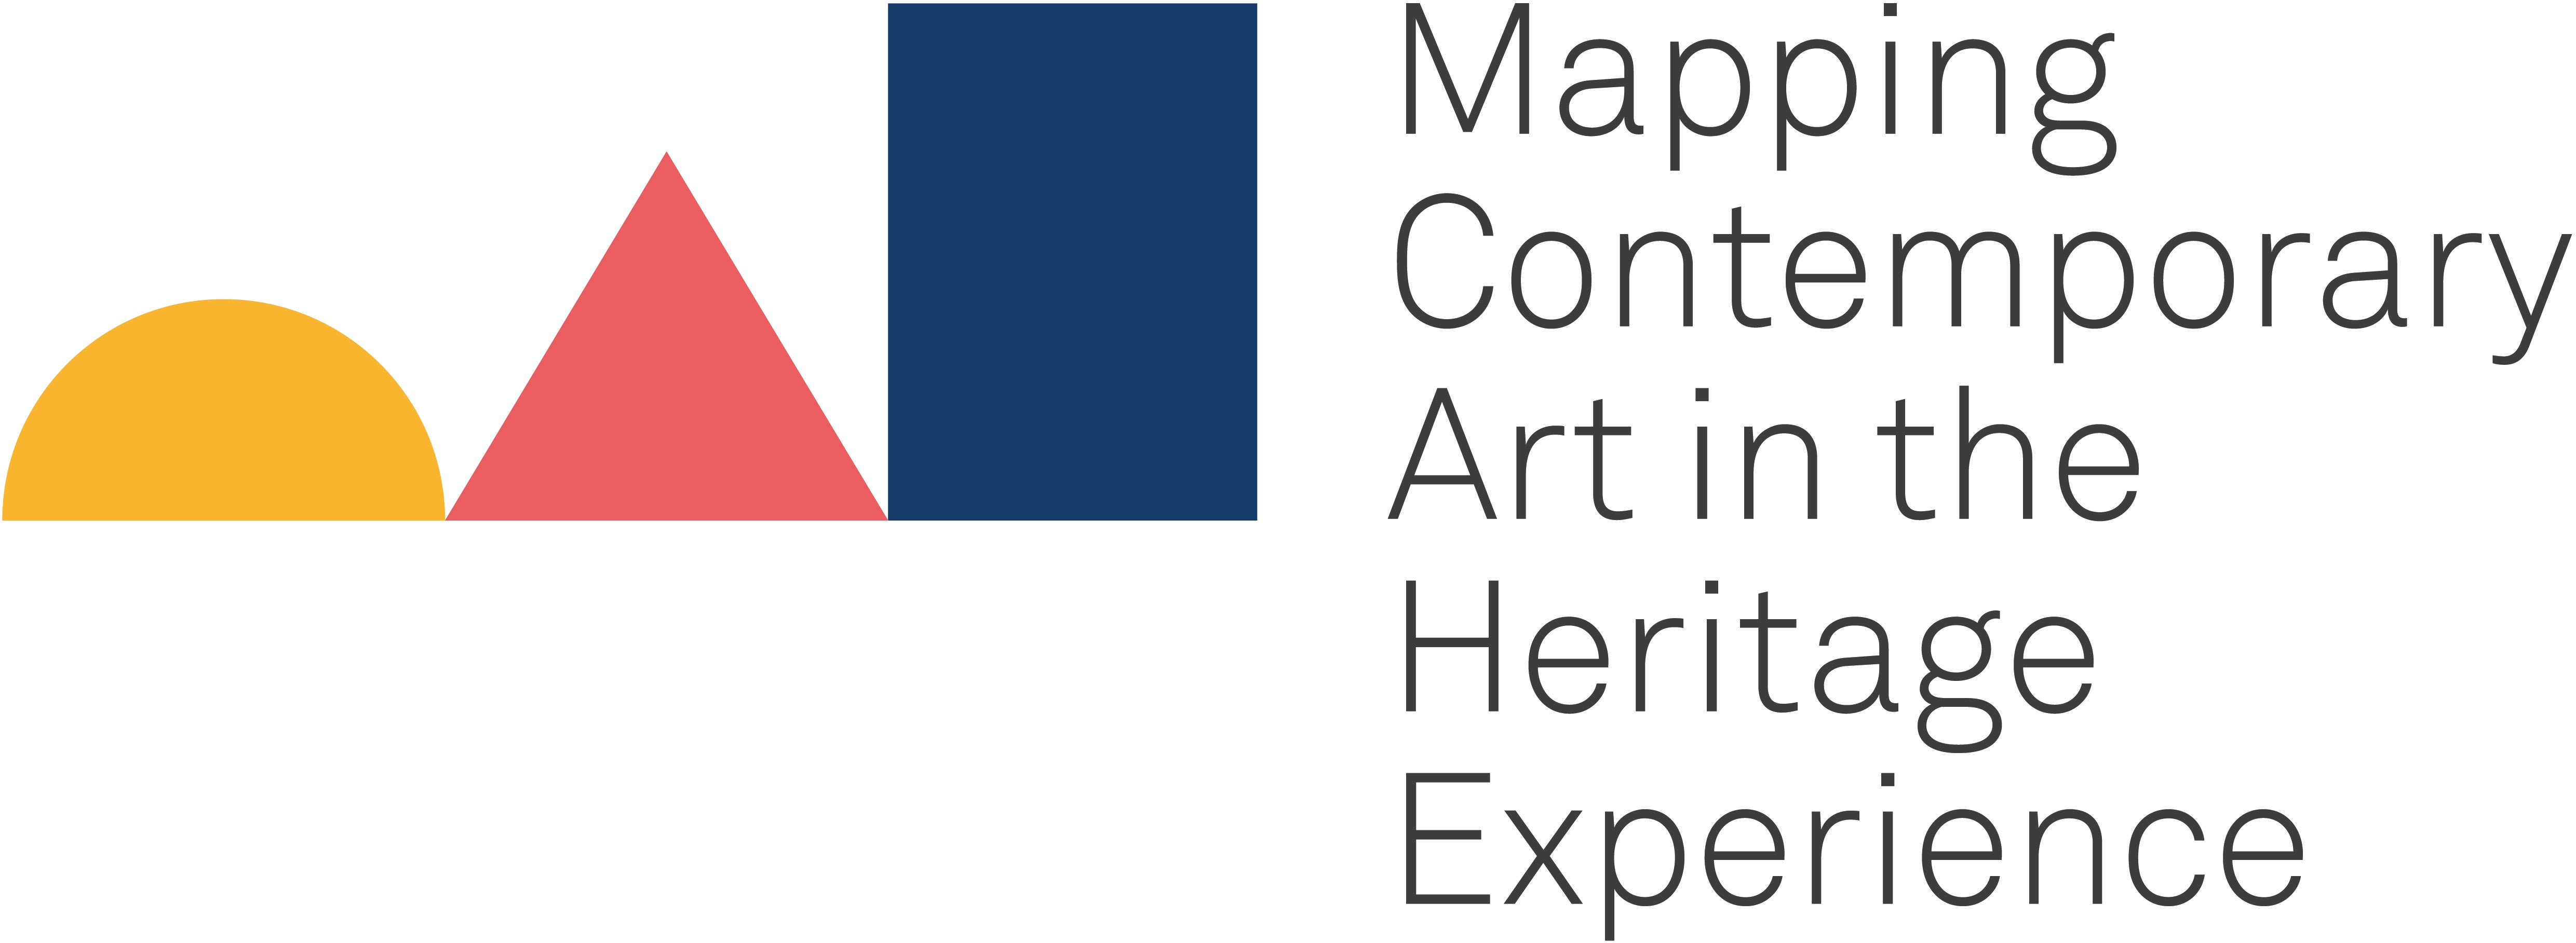 Mapping Contemporary Art in the Heritage Experience